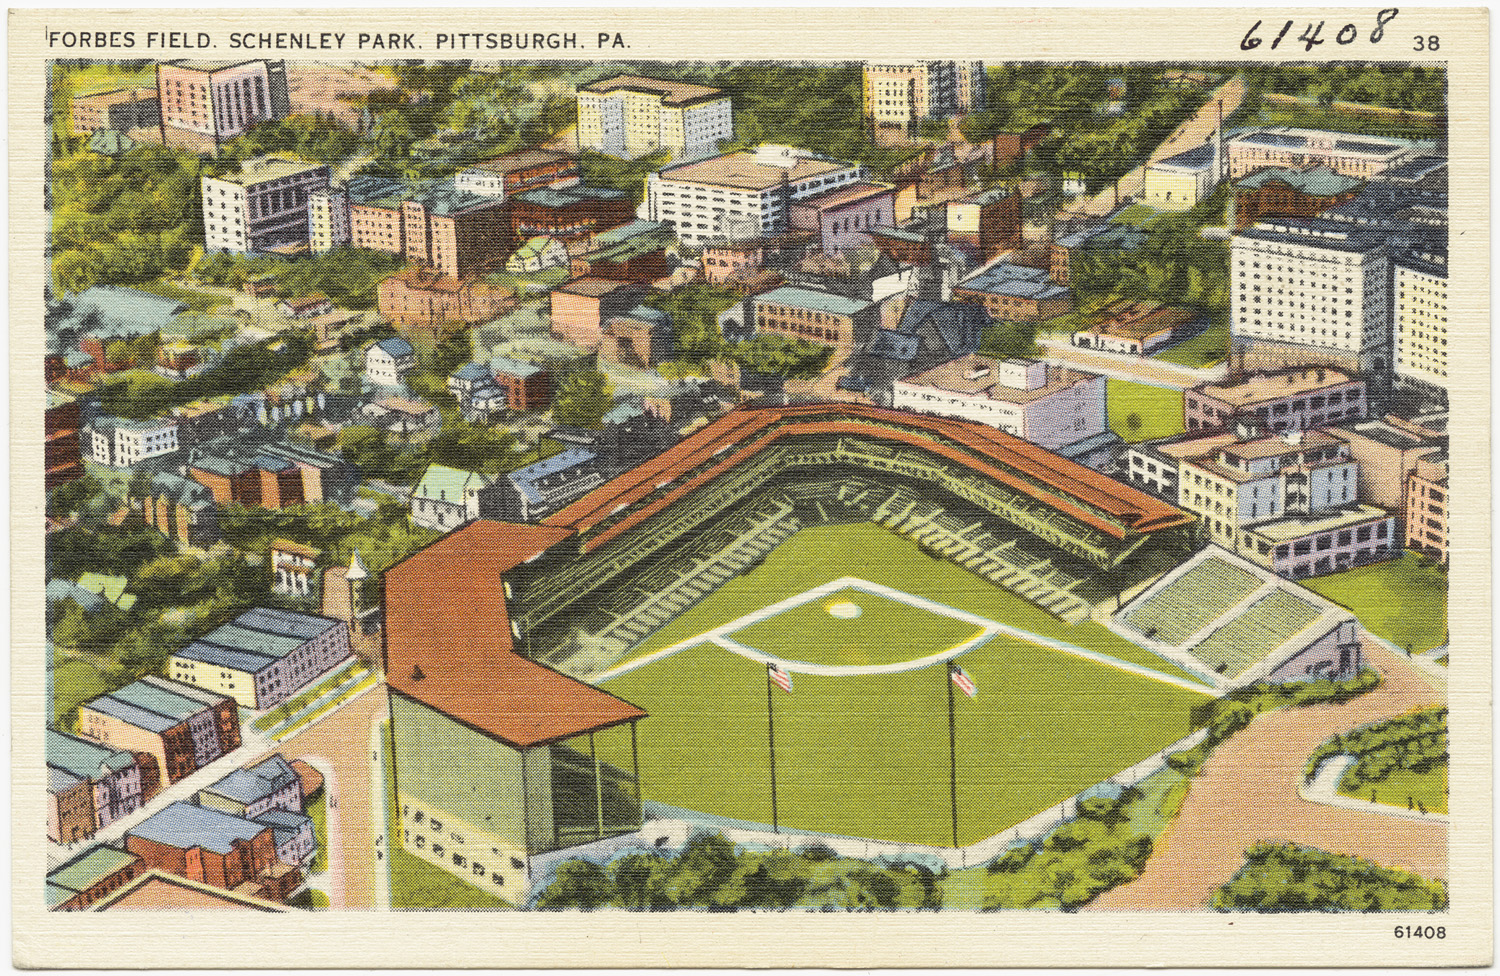 Forbes Field Schenley Park Pittsburgh C Pa